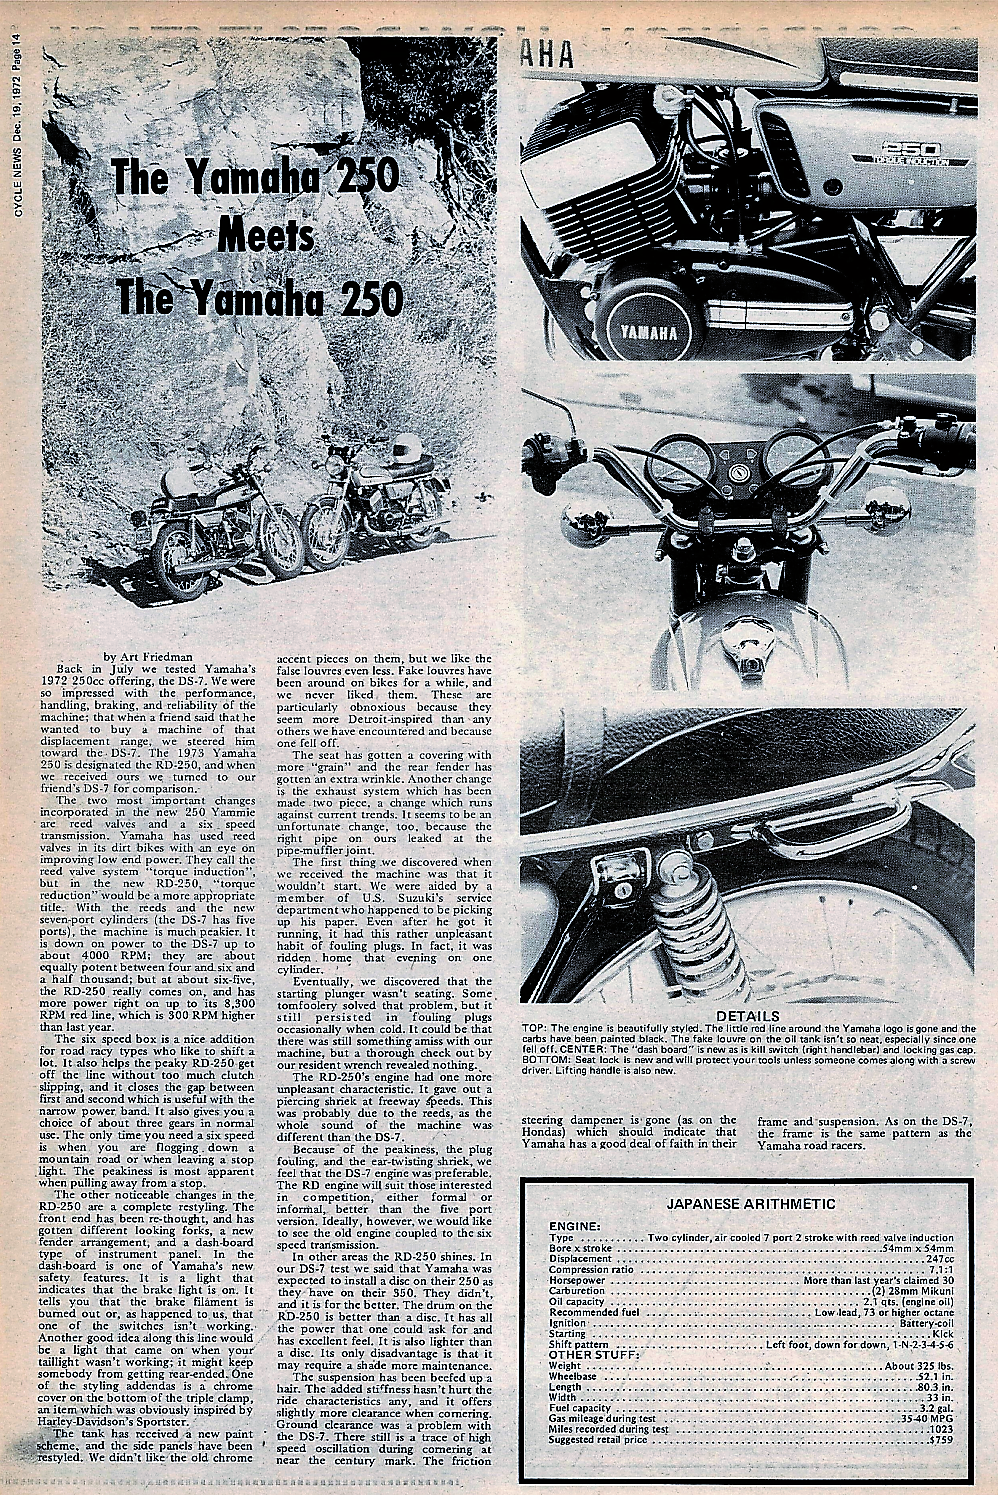 1973 Yamaha RD 250 & 1972 DS7 250 road test.1.jpg